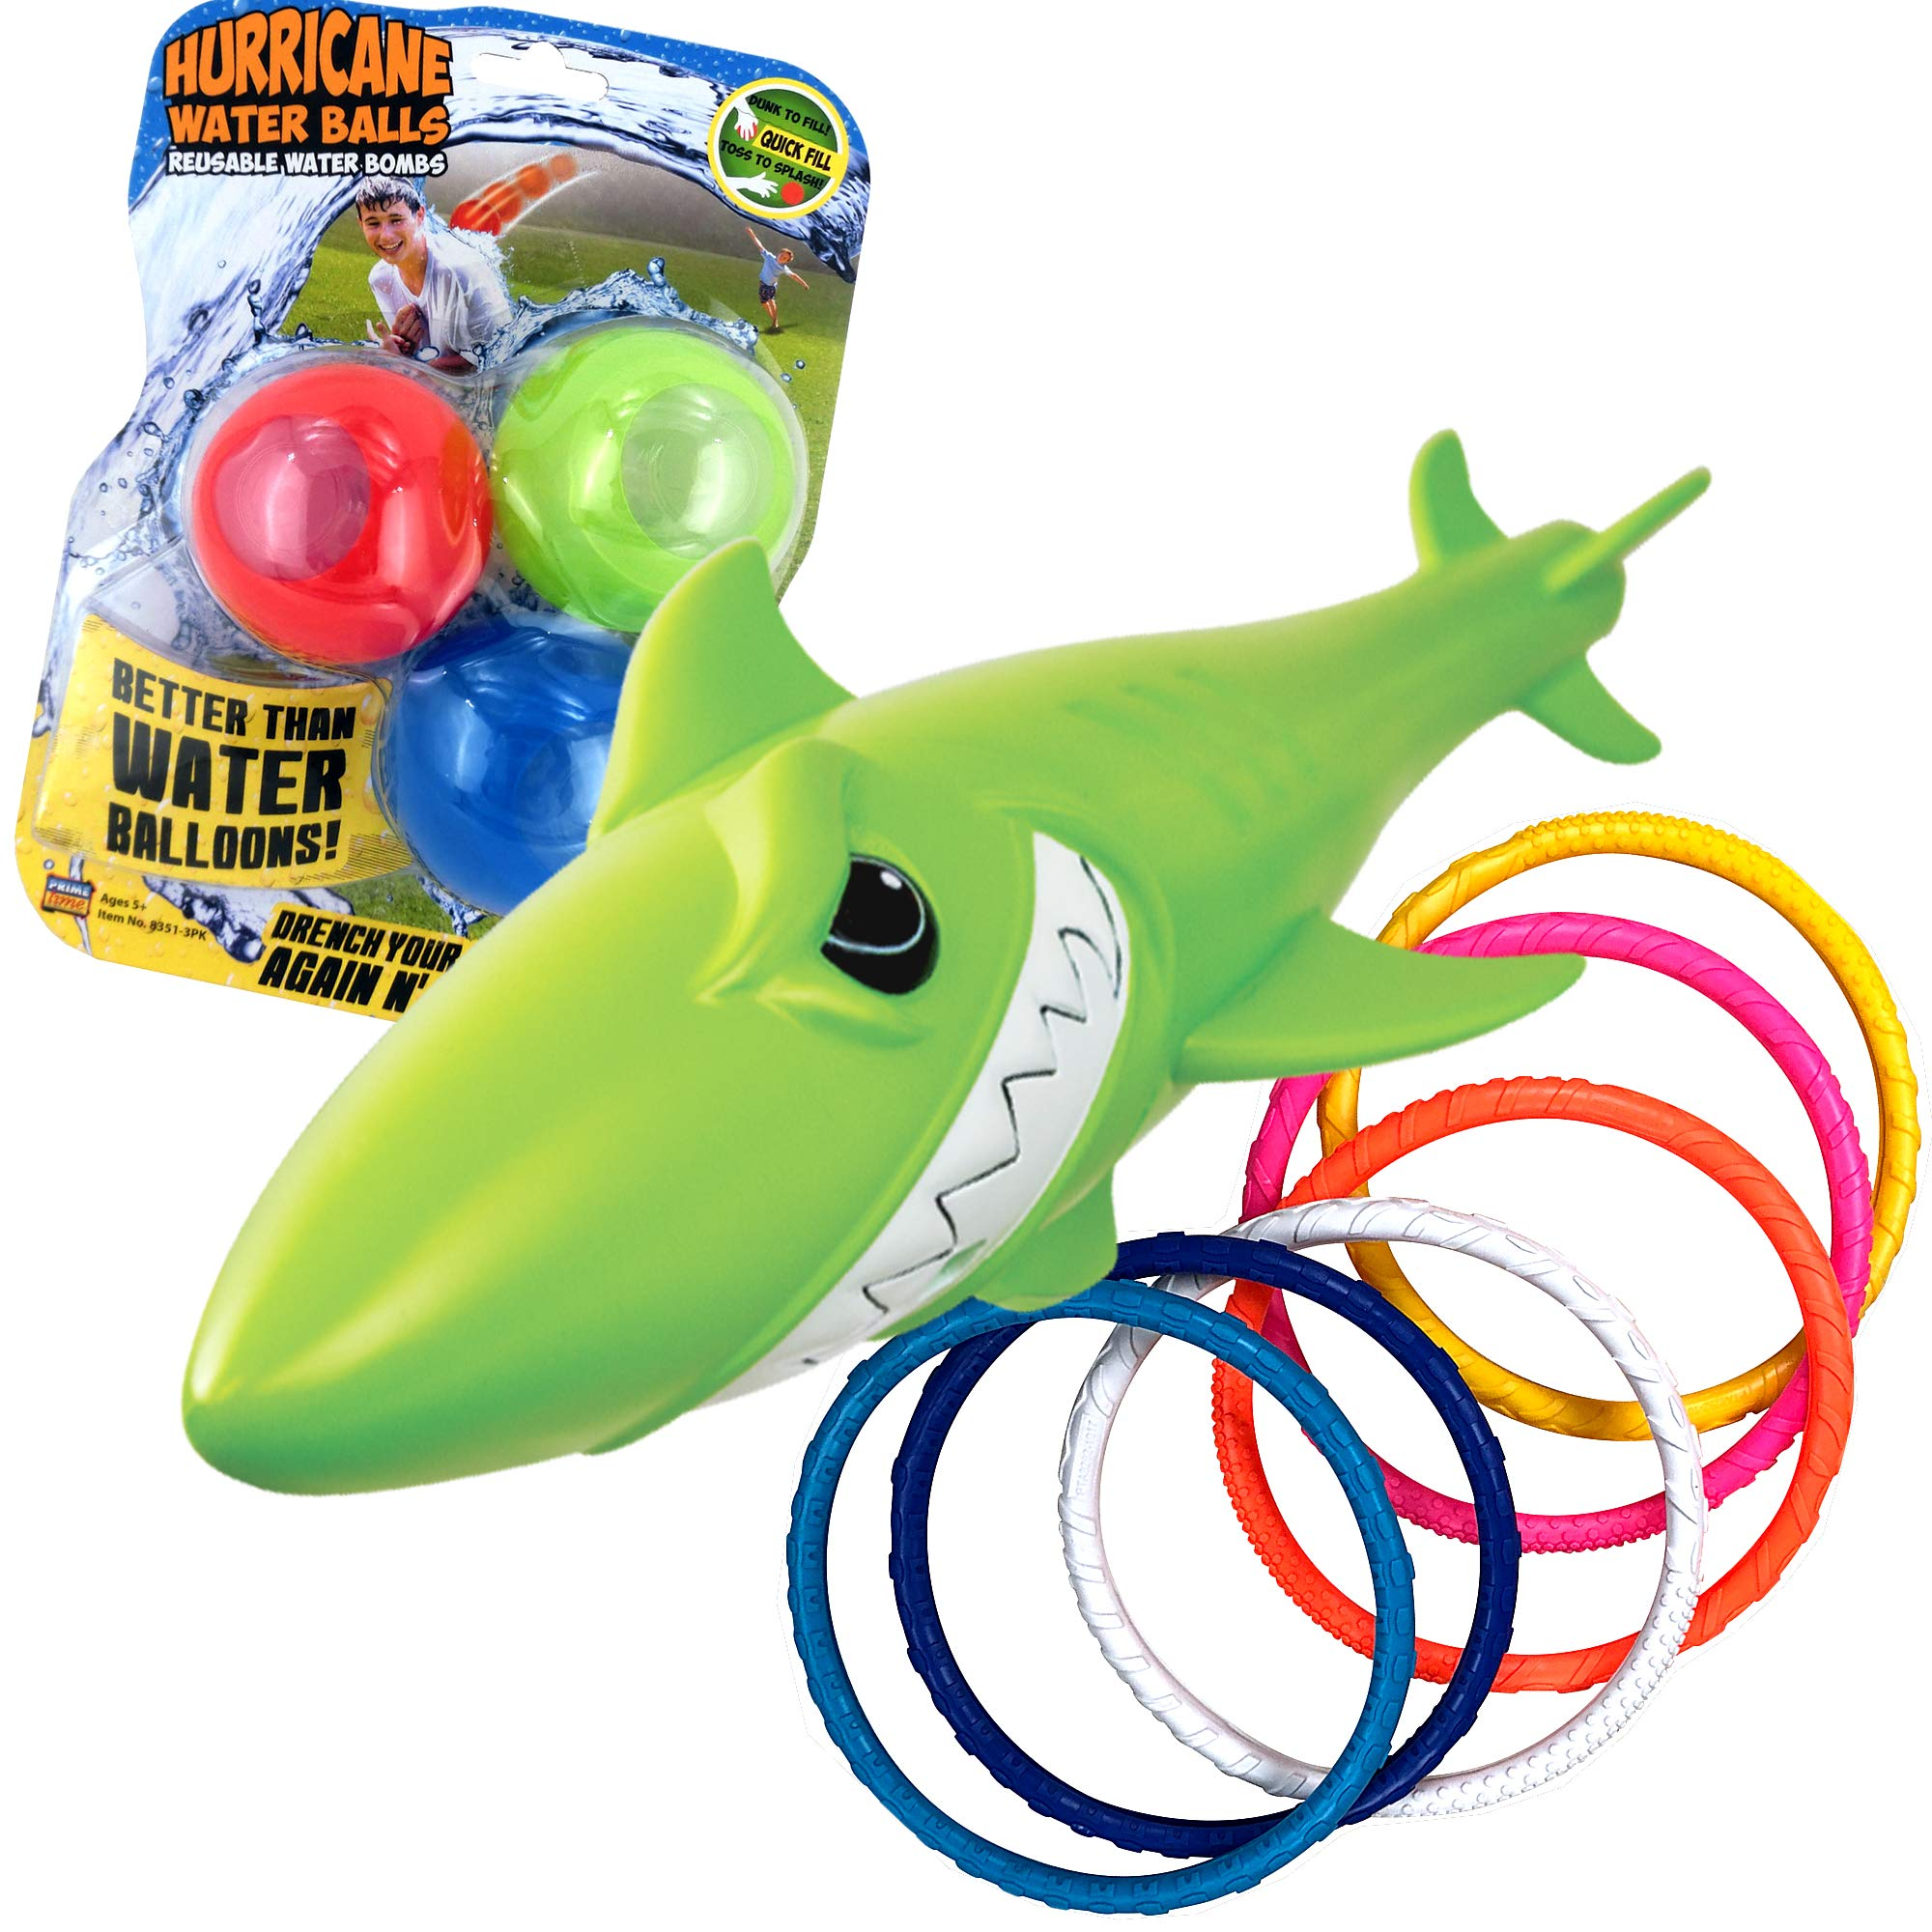 Prime Time Toys Summer Water Fun Pack: Diving Masters Sharkpedo - Dizzy Dive Rings 6 Pack - Hurricane Reusable Water Balls 3 Pack by Prime Time Toys